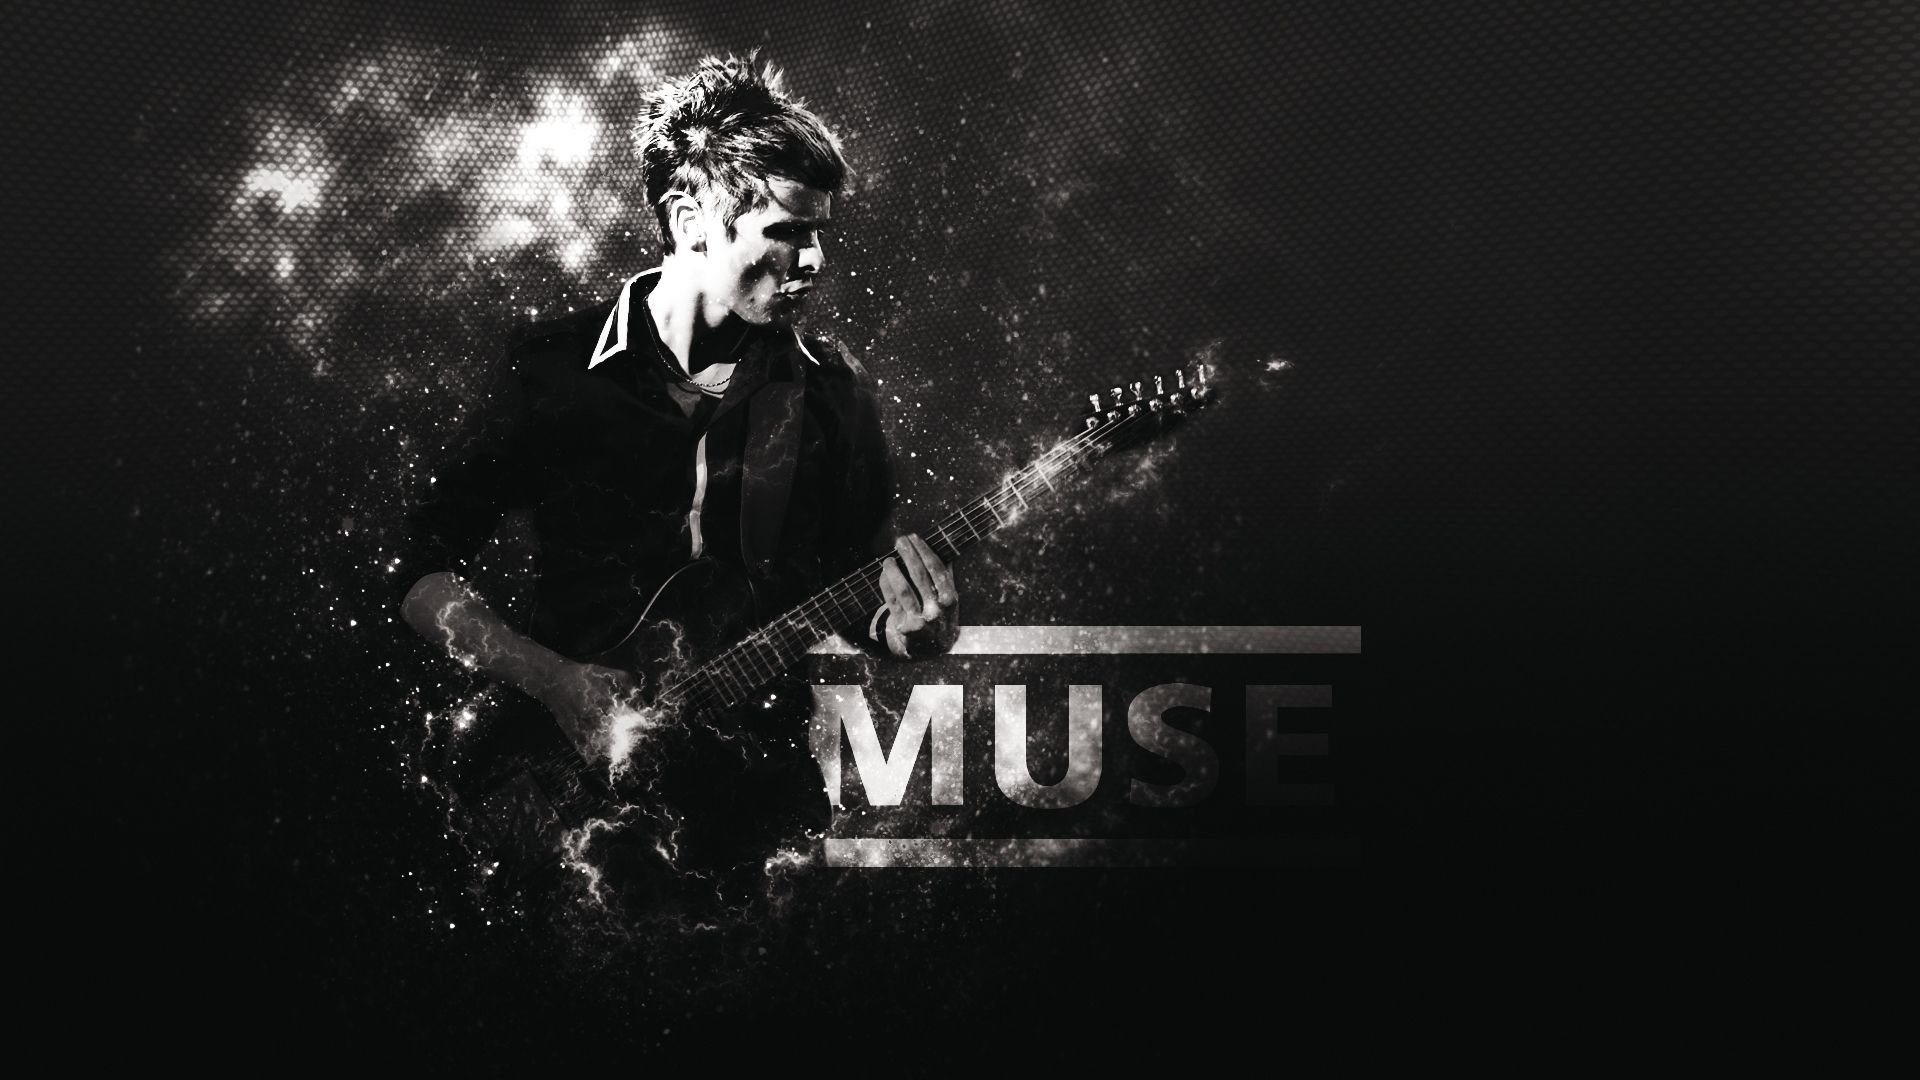 Muse 1920x1080 px - High Quality Pictures